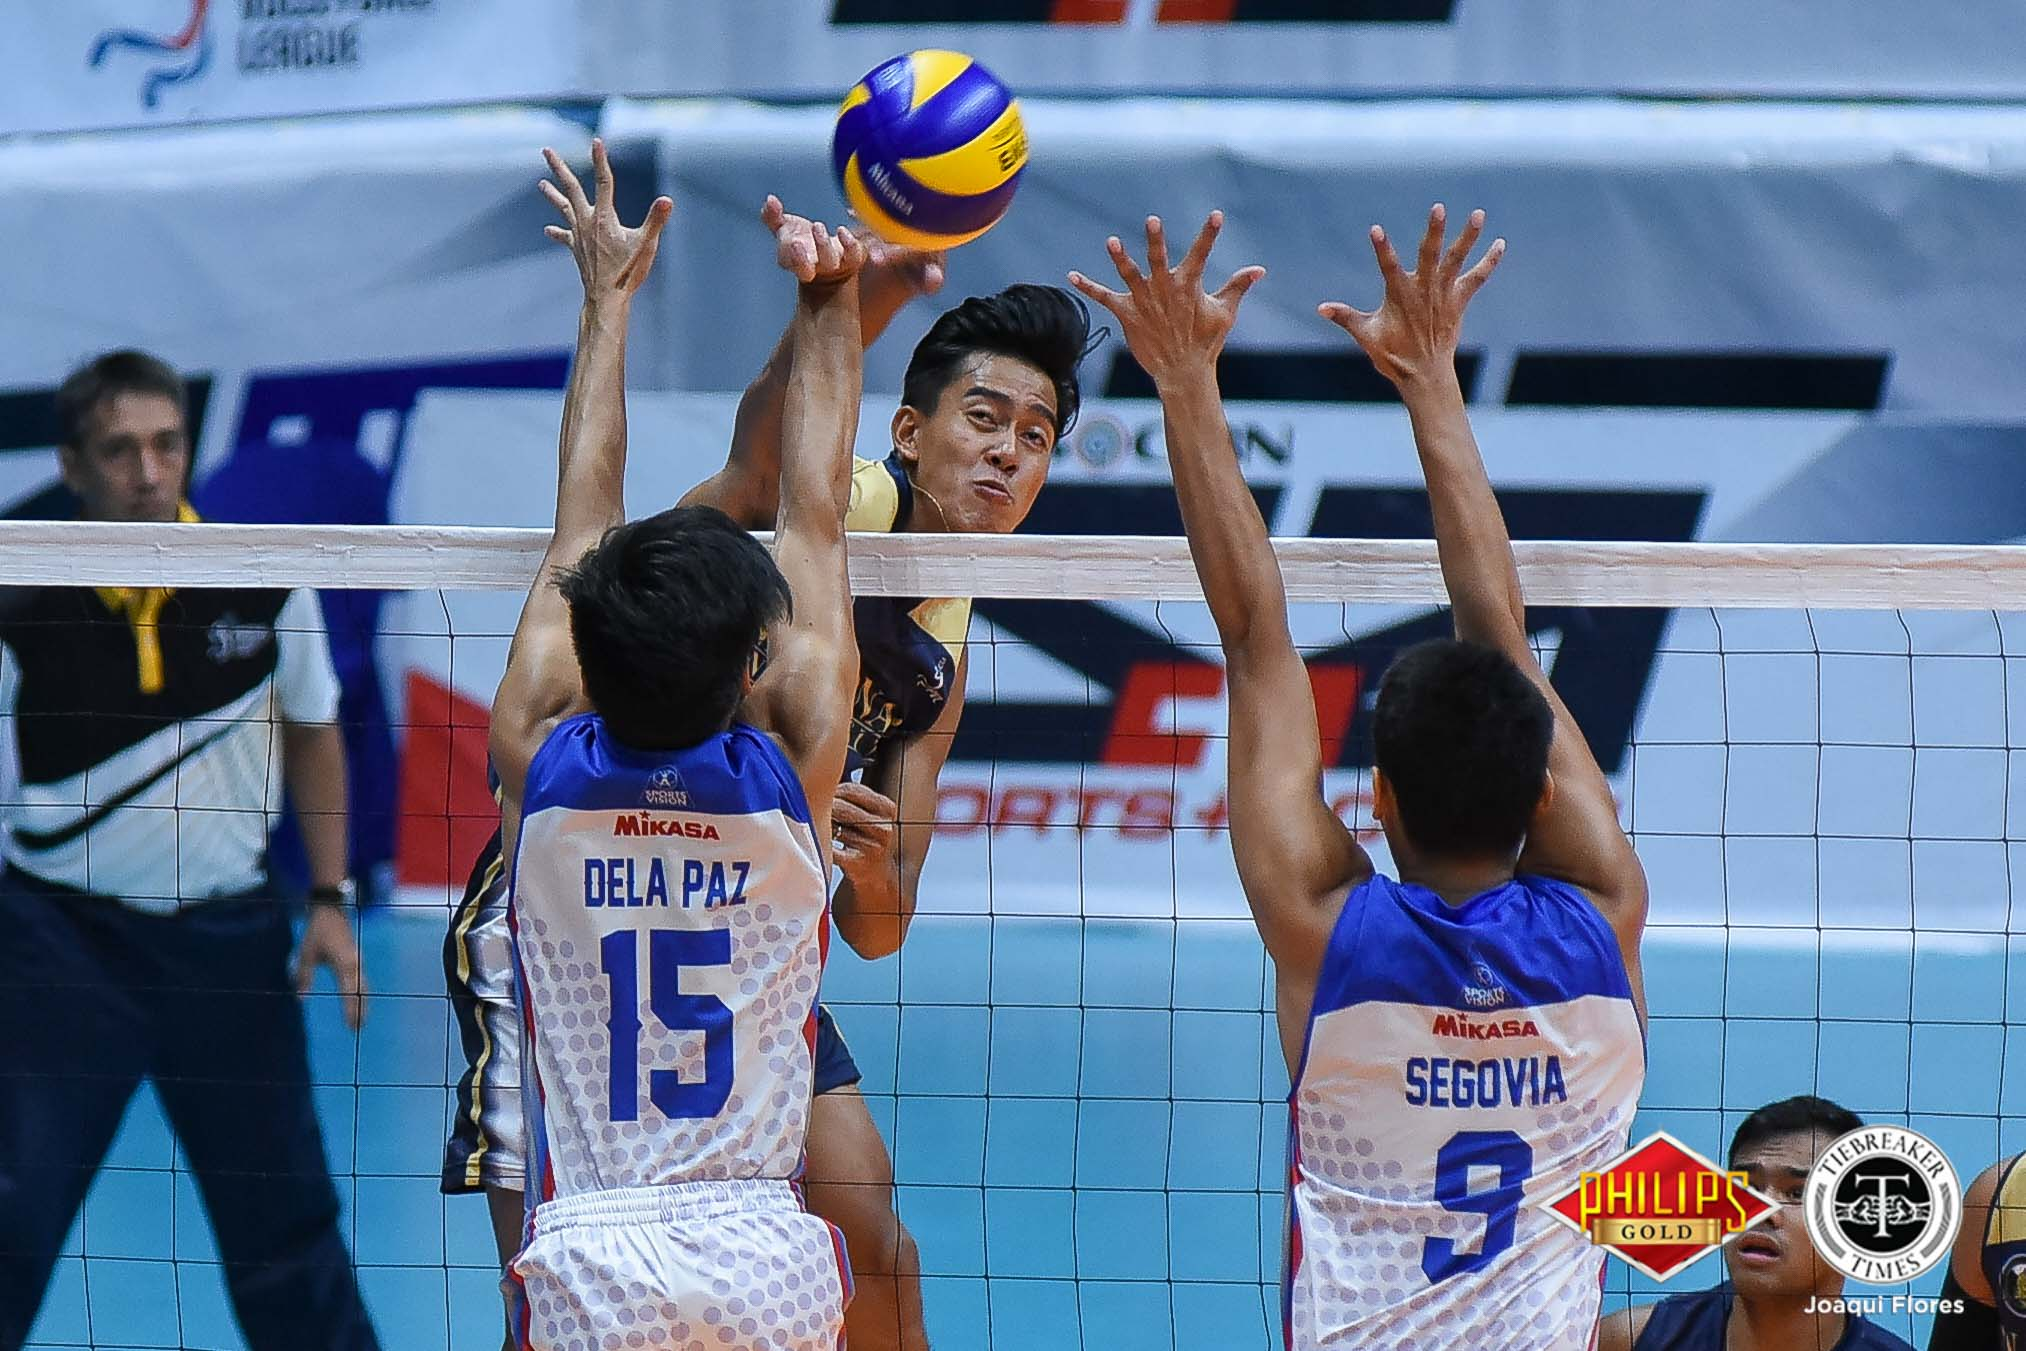 Tiebreaker Times NU streaks past Arellano for share of lead AU News NU PVL Volleyball  Sherwin Meneses Ricky Marcos NU Men's Volleyball Kim Dayandante Dante Alinsunurin Christian Segovia Bryan Bagunas Arellano Men's Volleyball Angelo Almendres 2018 PVL Season 2018 PVL Men's Collegiate Conference